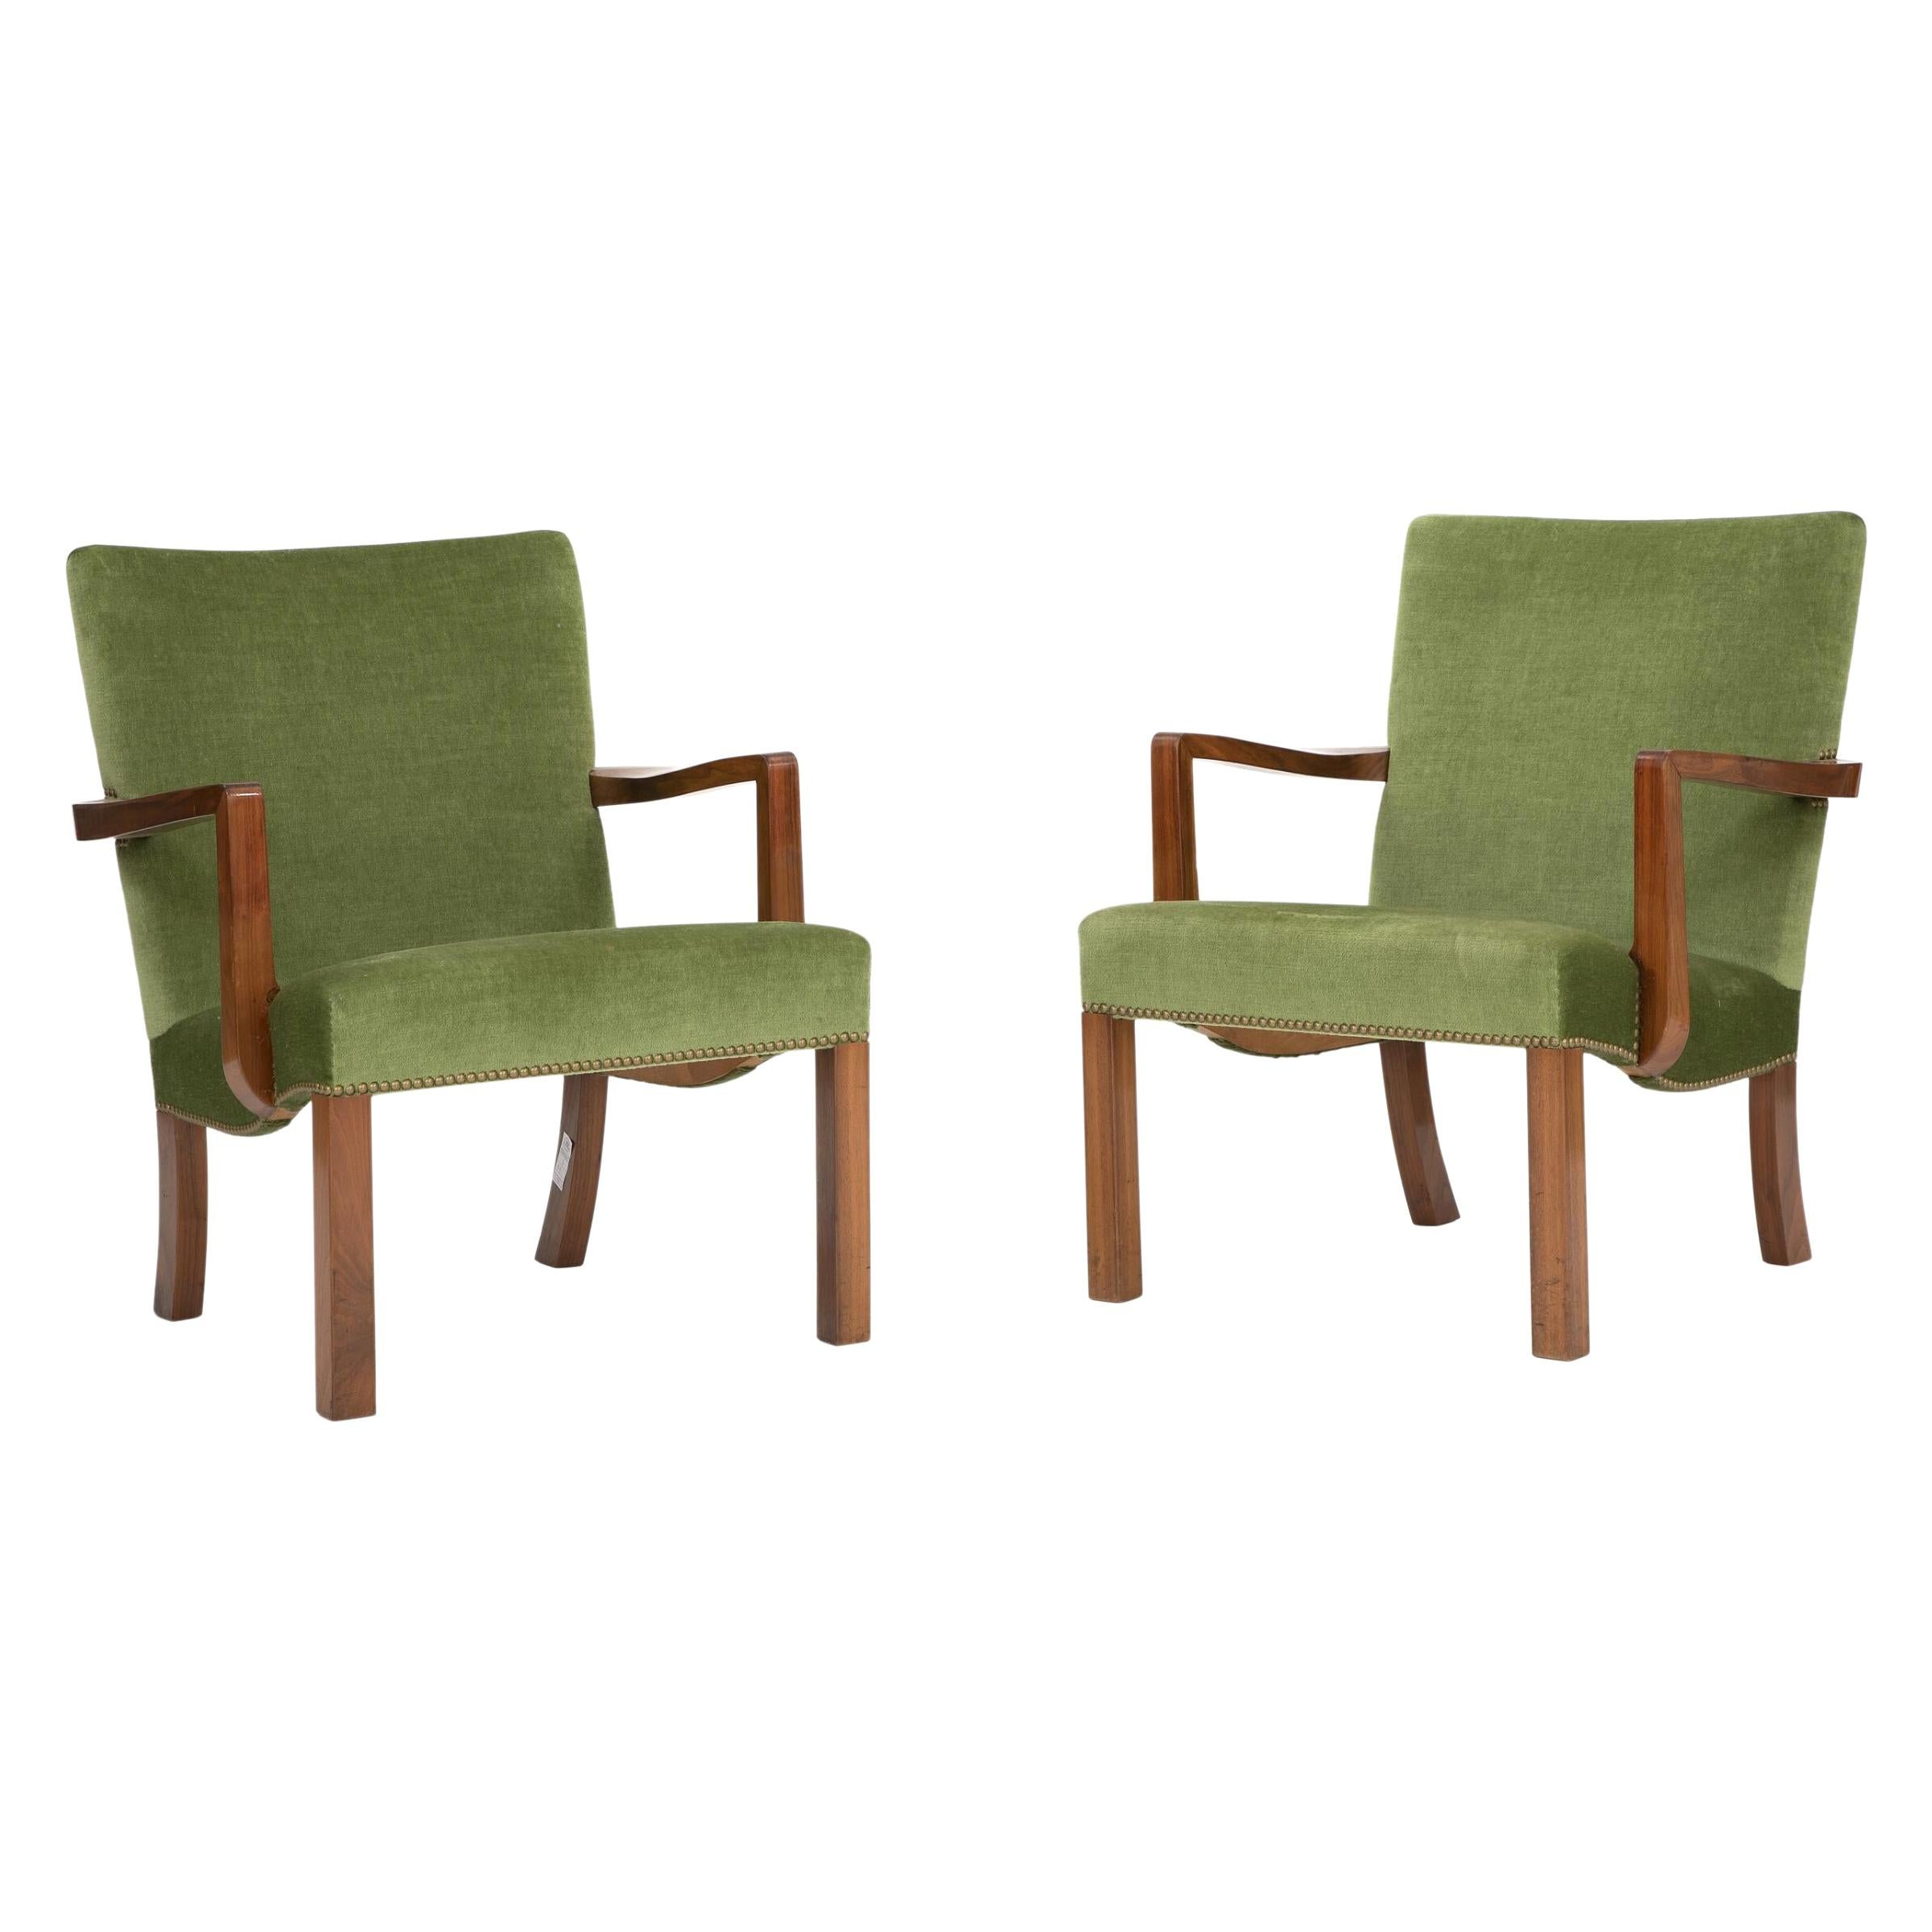 Pair of Lounge Chairs by Orla Mølgard-Nielsen and Jacob Kjaer